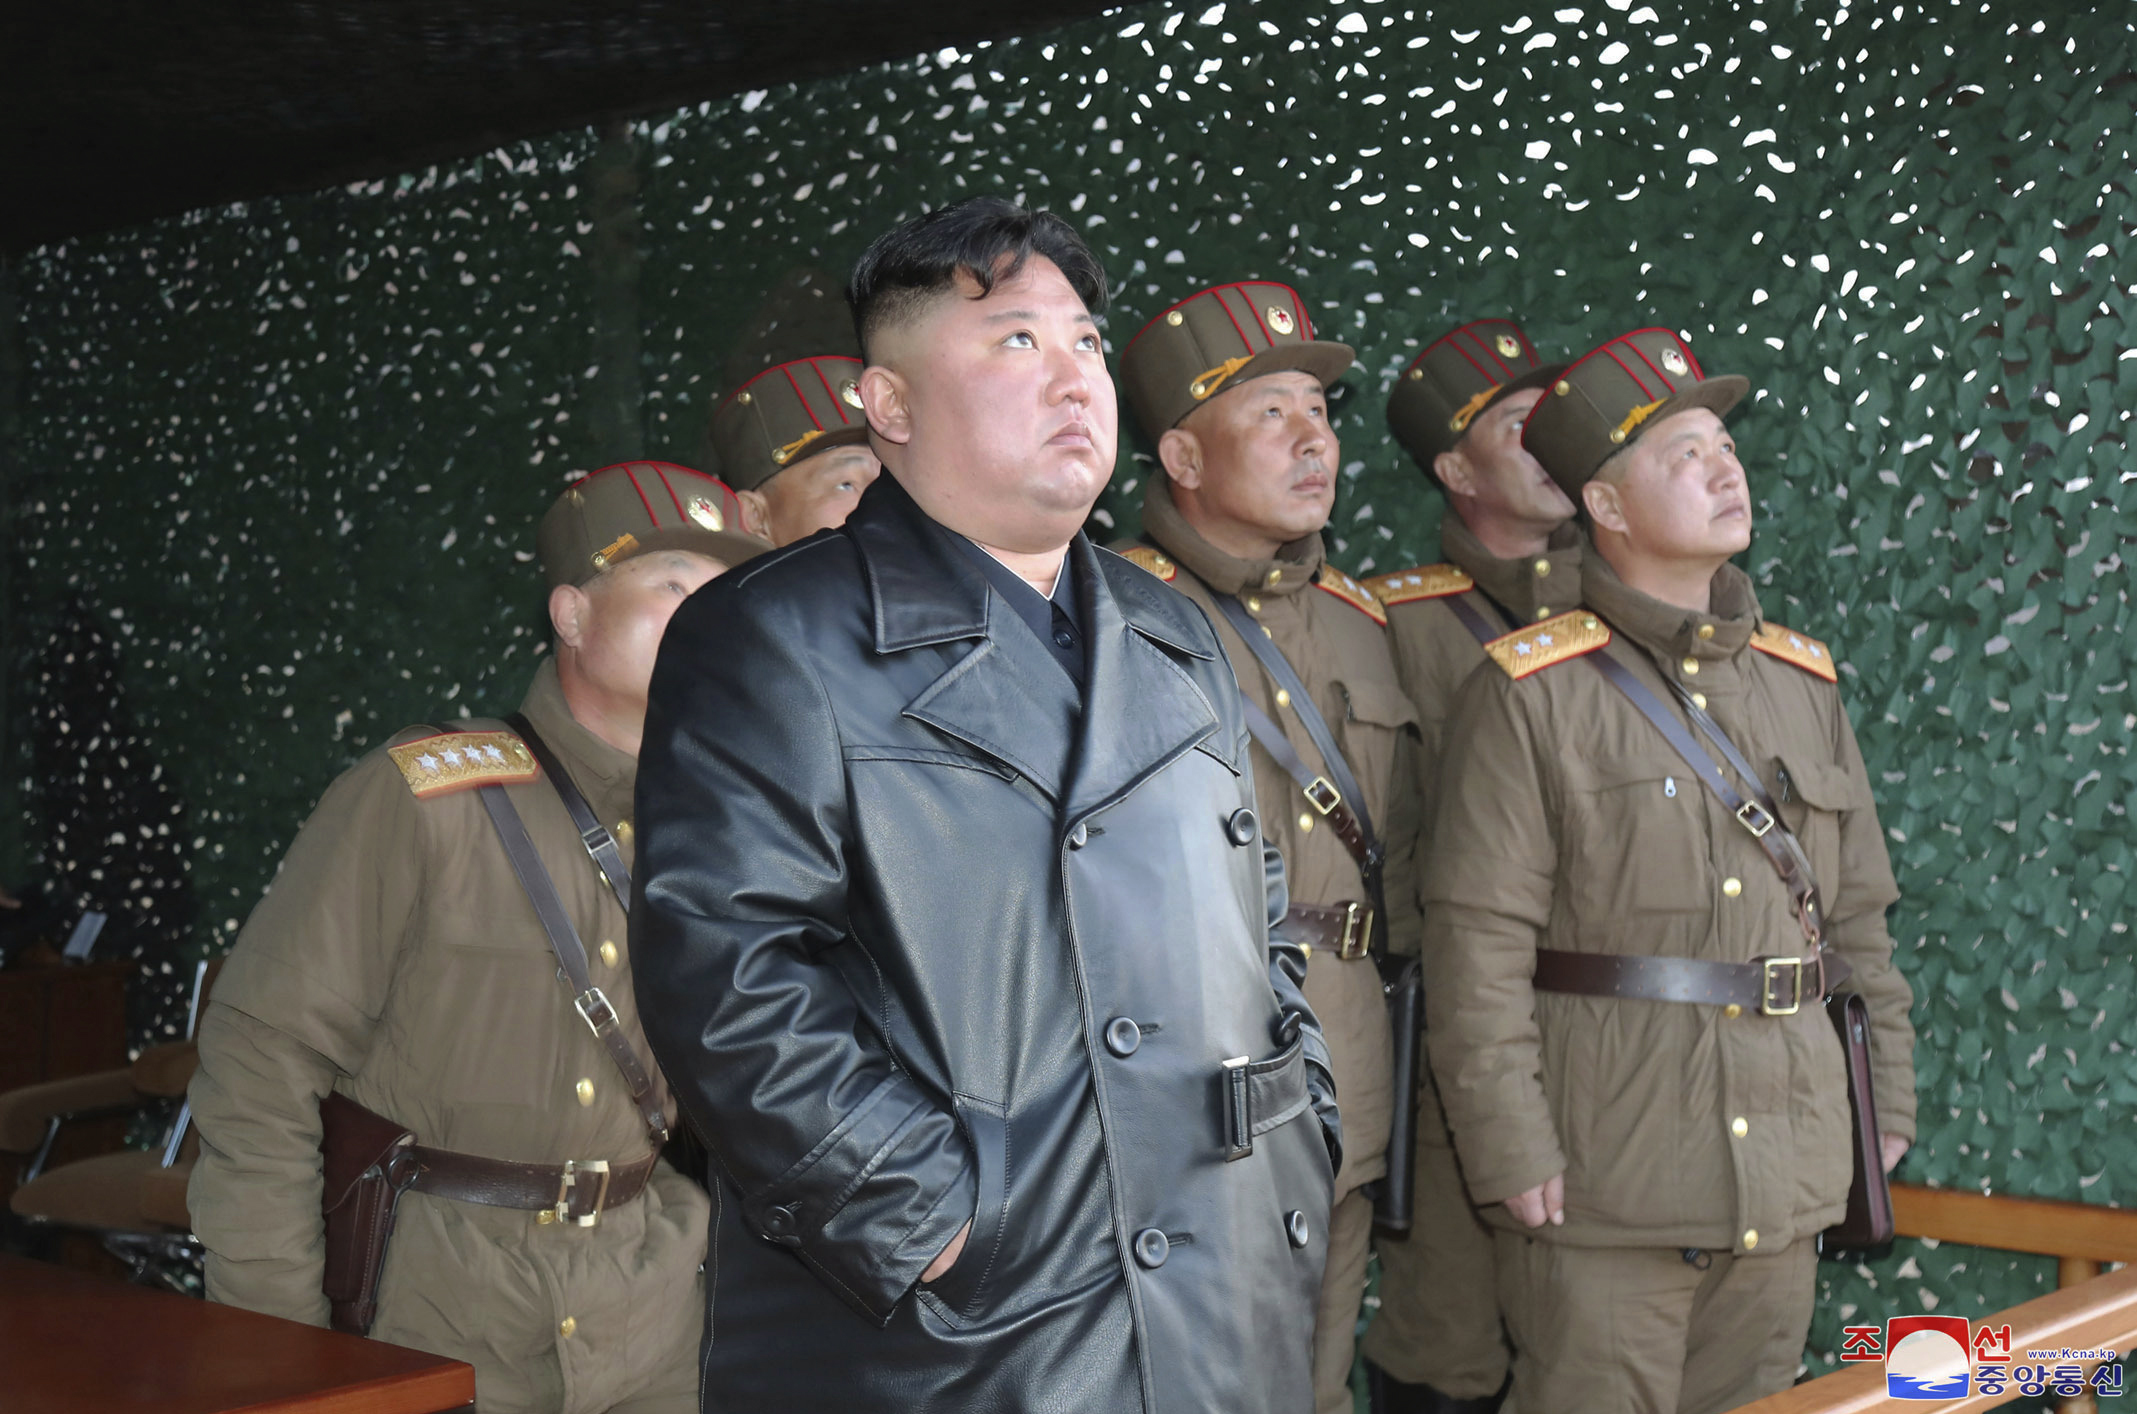 In this photo provided by the North Korean government, North Korean leader Kim Jong Un inspects military exercise at an undisclosed location in North Korea on March 21, 2020.